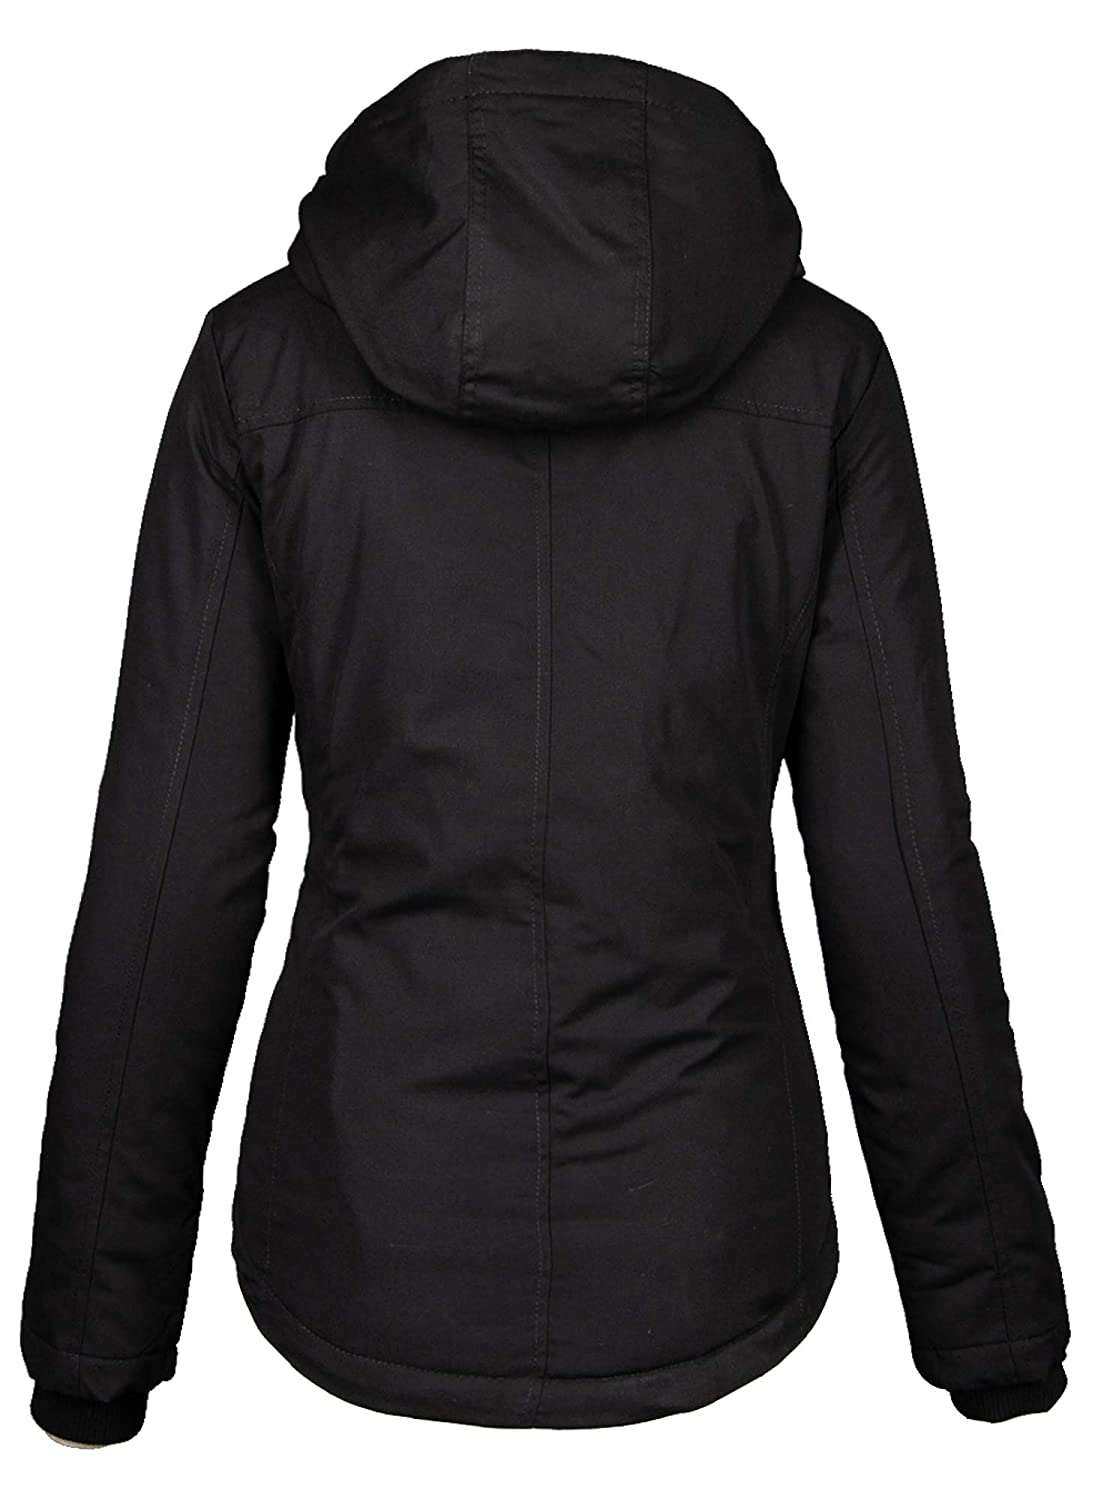 Sublevel giacca parka cappotto donna autunno inverno giacca invernale outdoor B167.